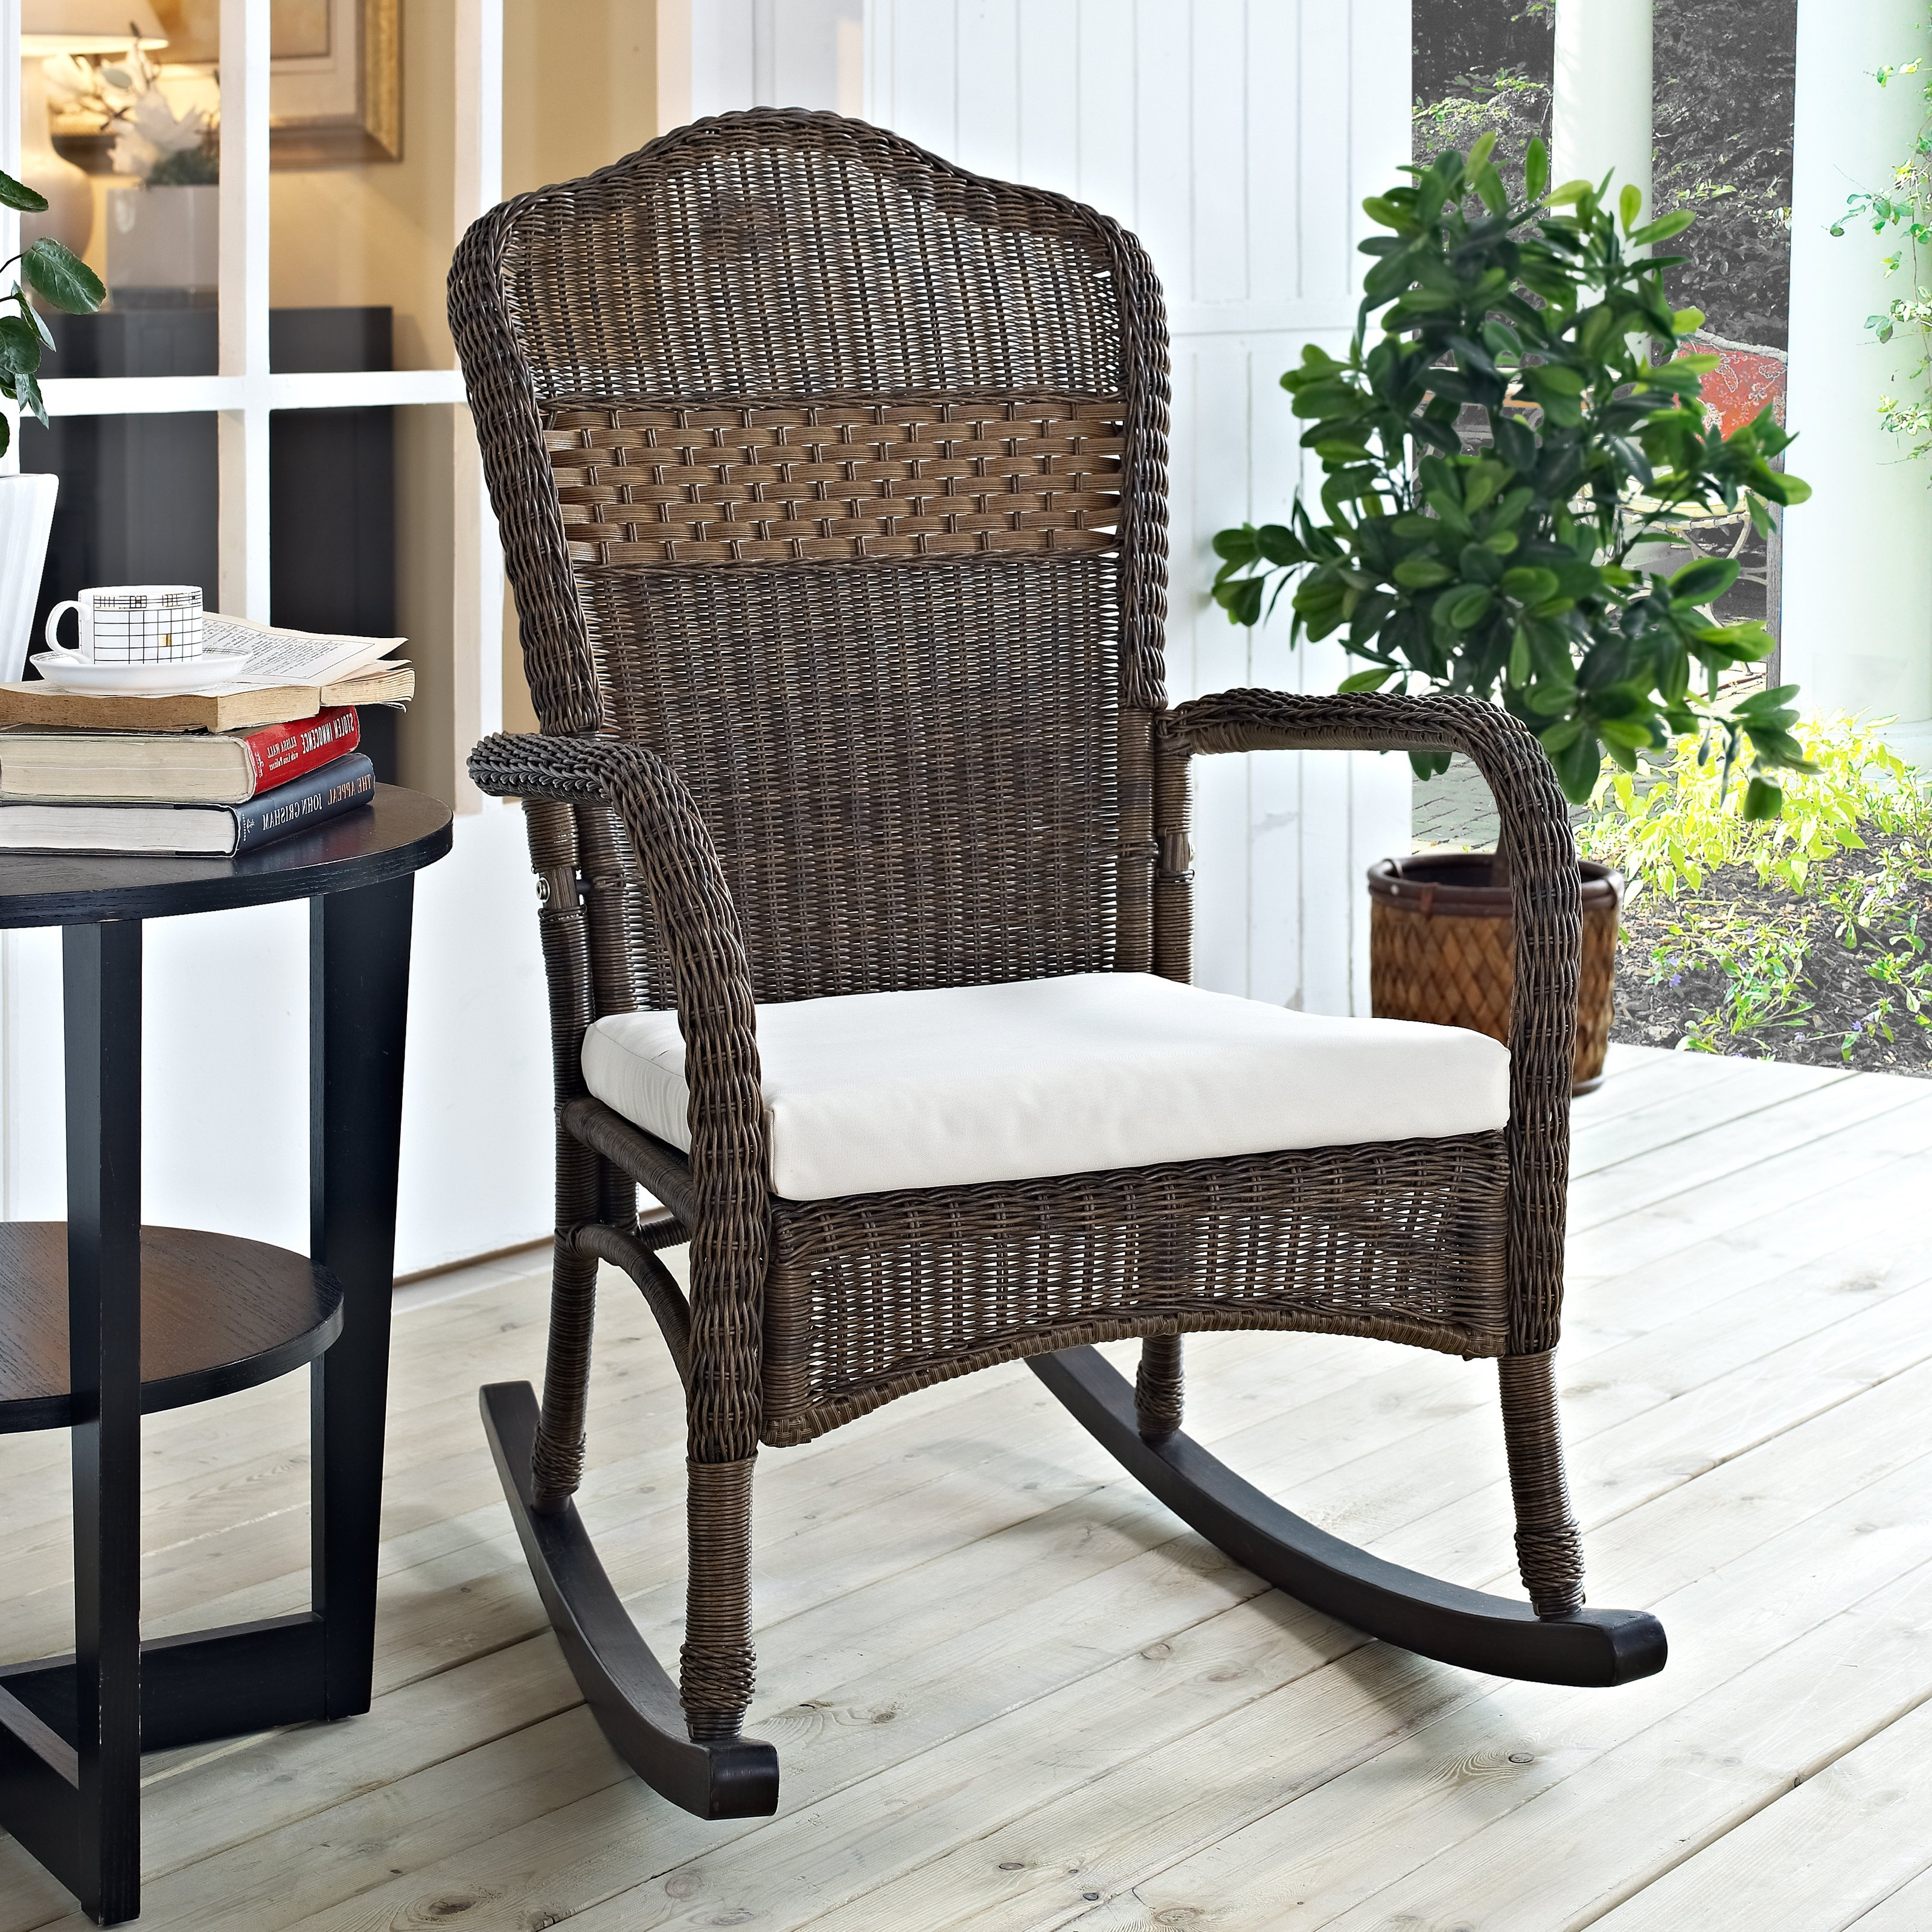 Featured Photo of Wicker Rocking Chairs And Ottoman